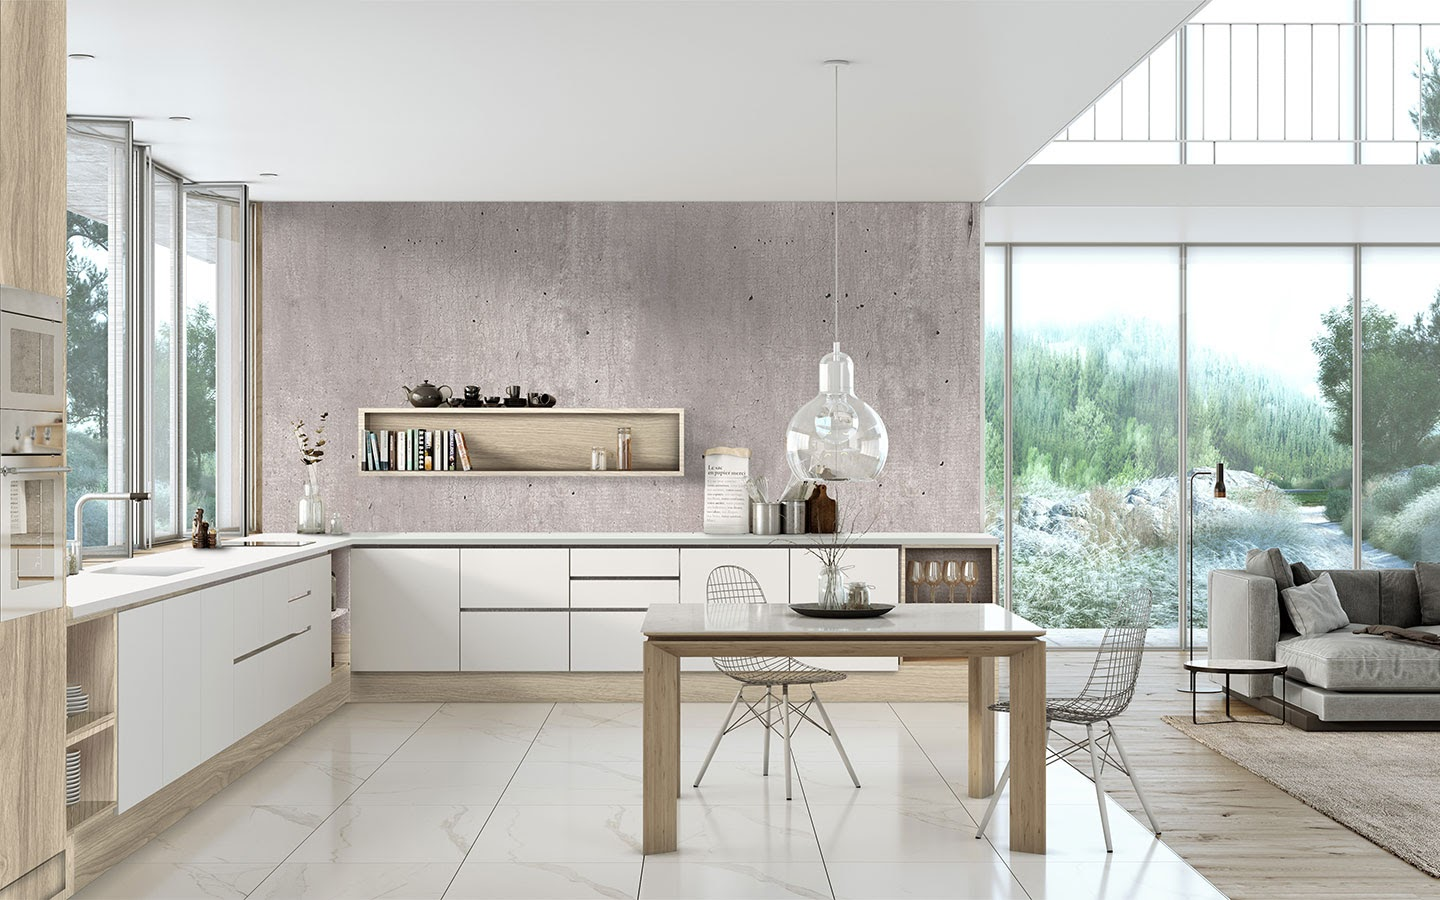 The benefits of having an open plan kitchen